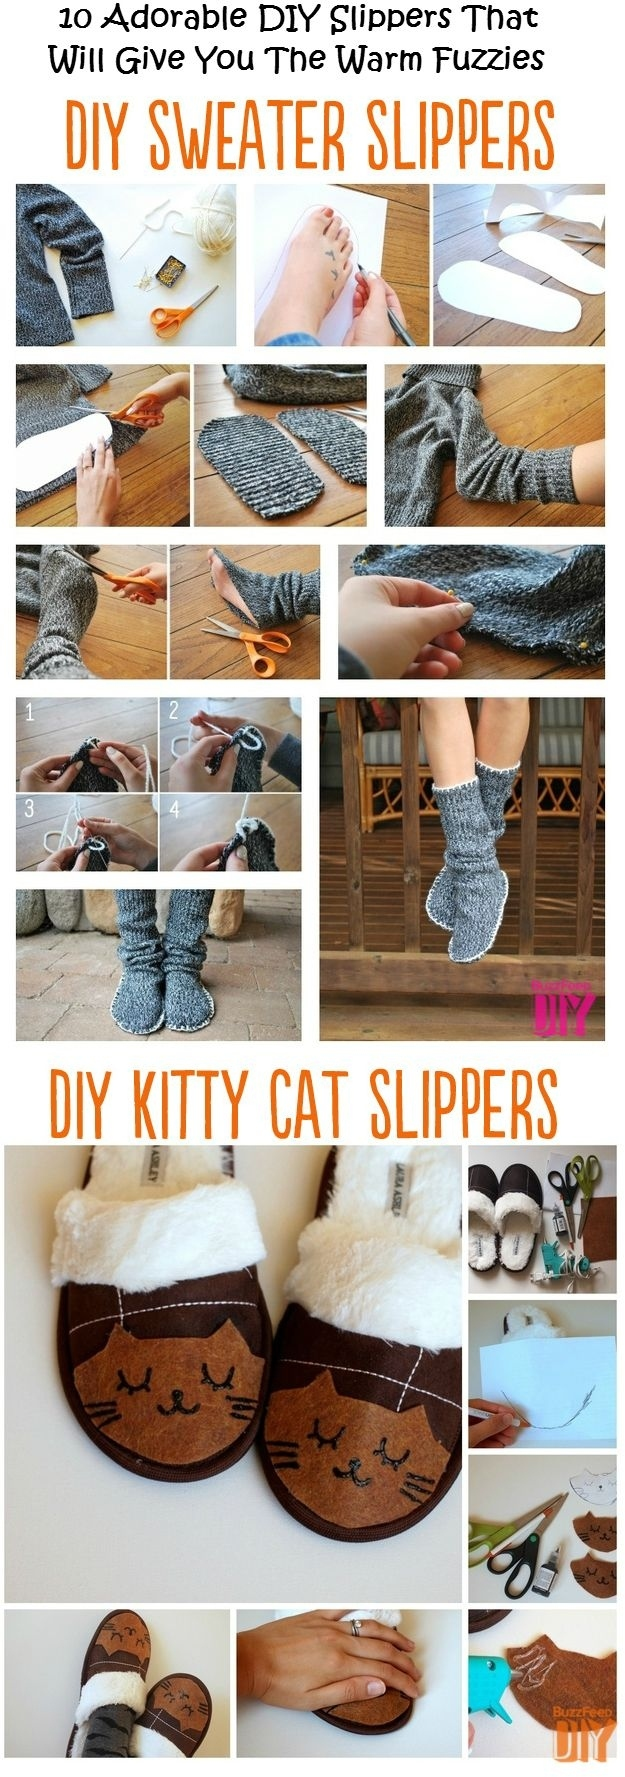 Turn your old sweater into slippers . . . regular or kitty cat.